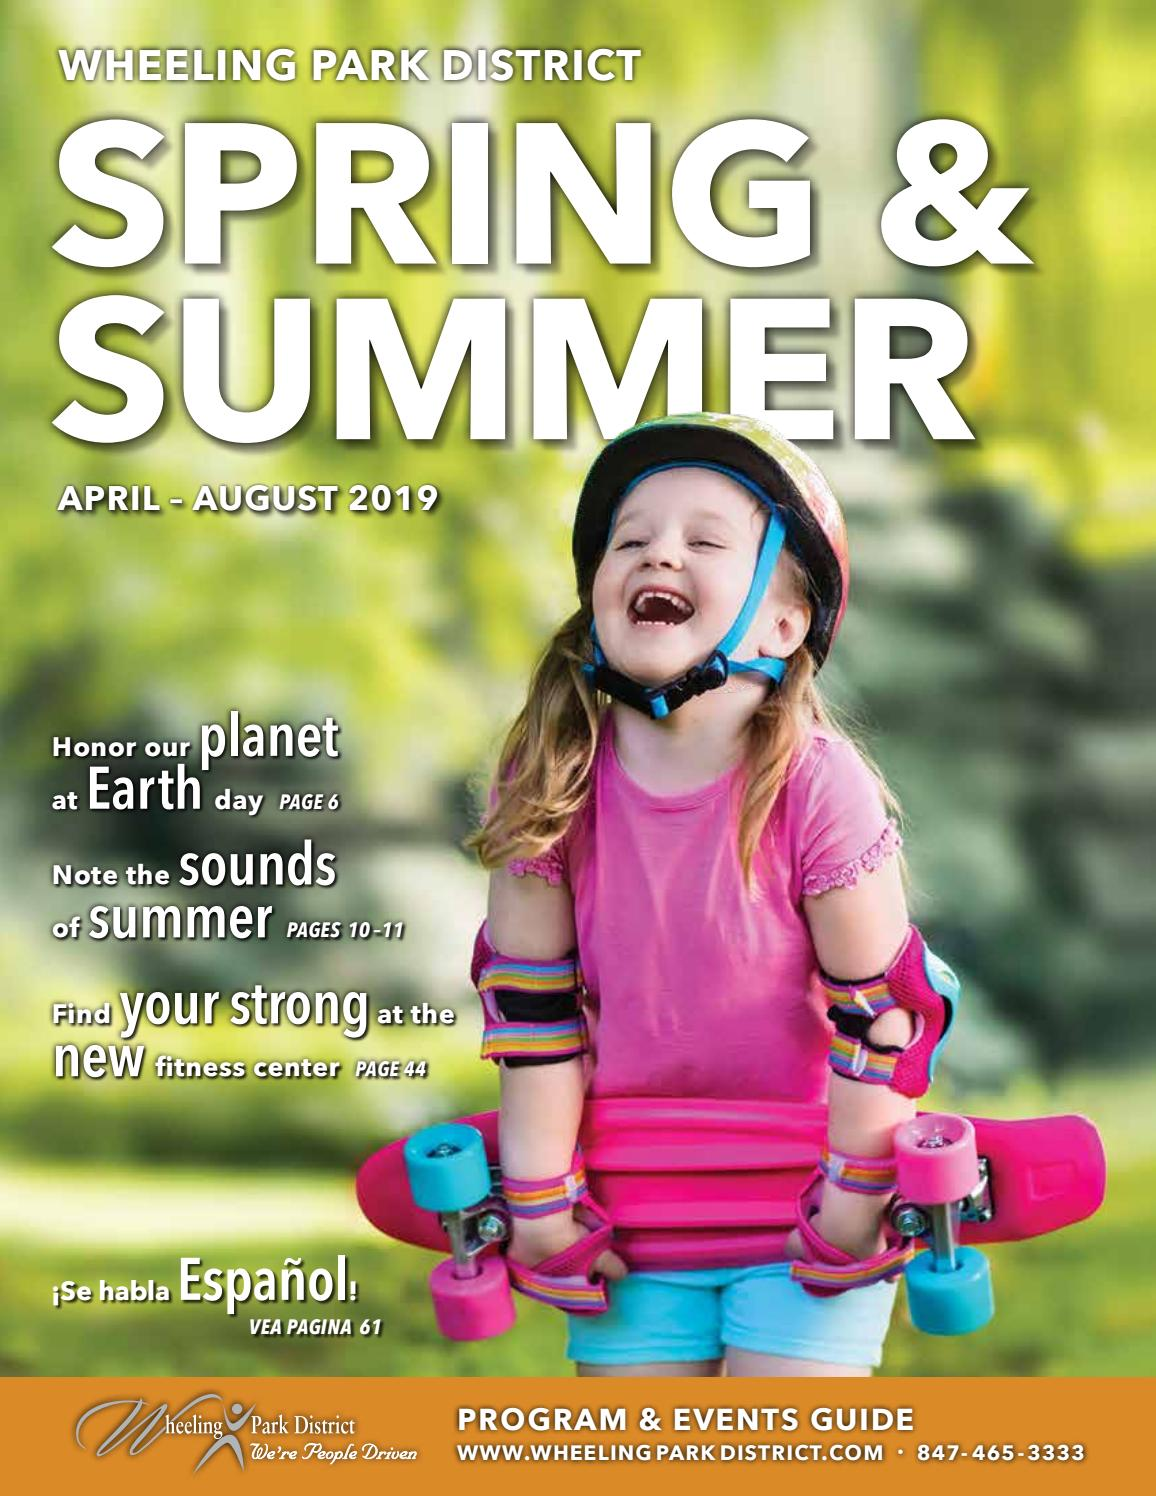 Spring & Summer Program and Events Guide by Wheeling Park District